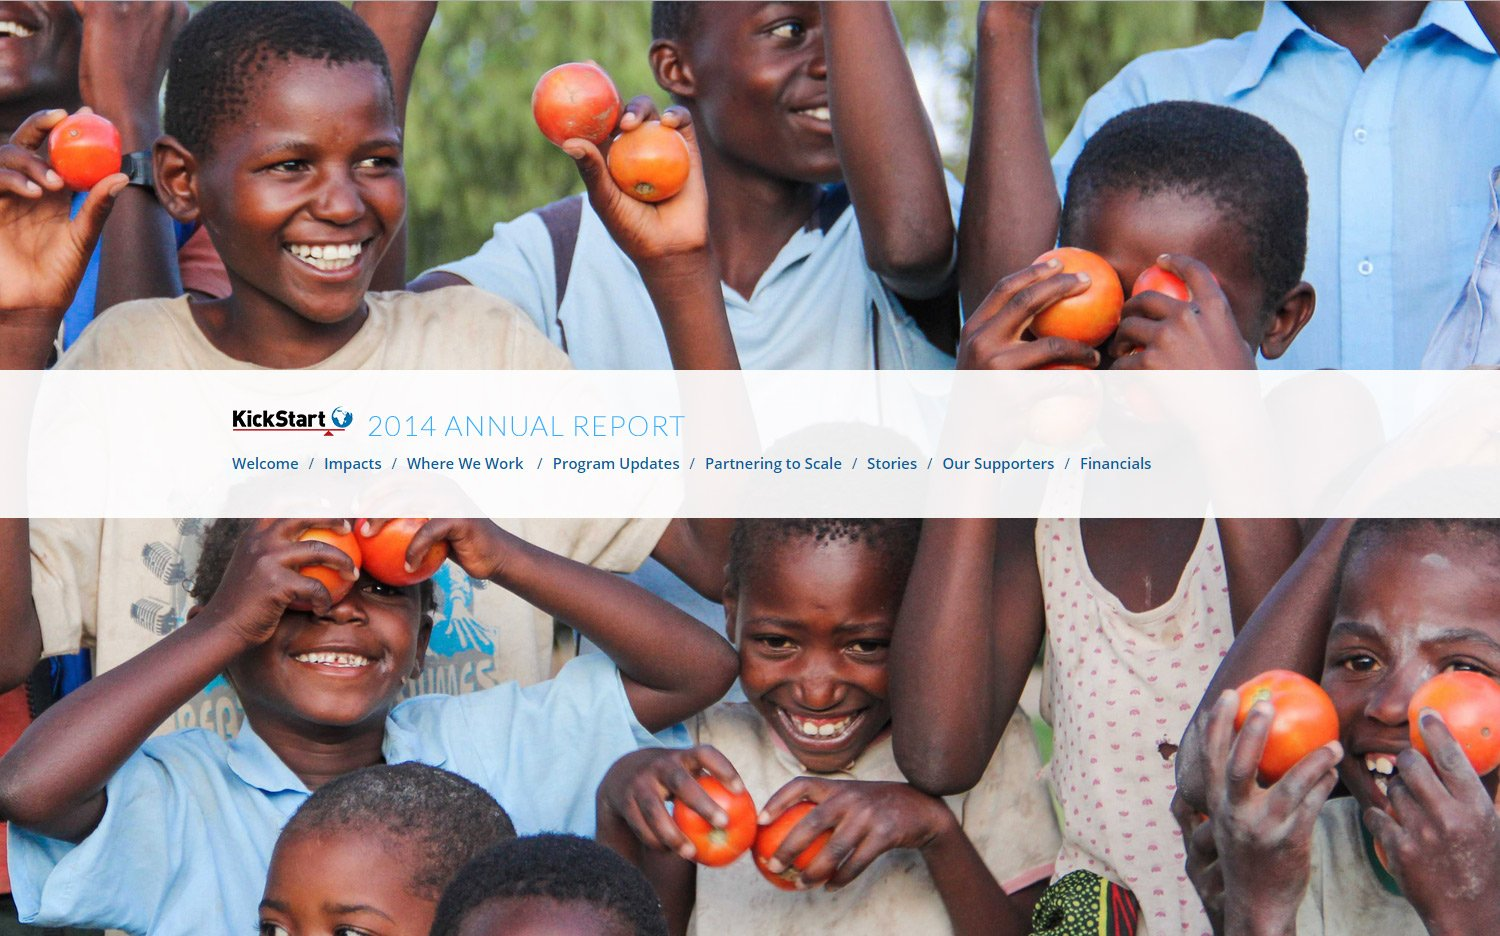 Annual Report website built with WordPress